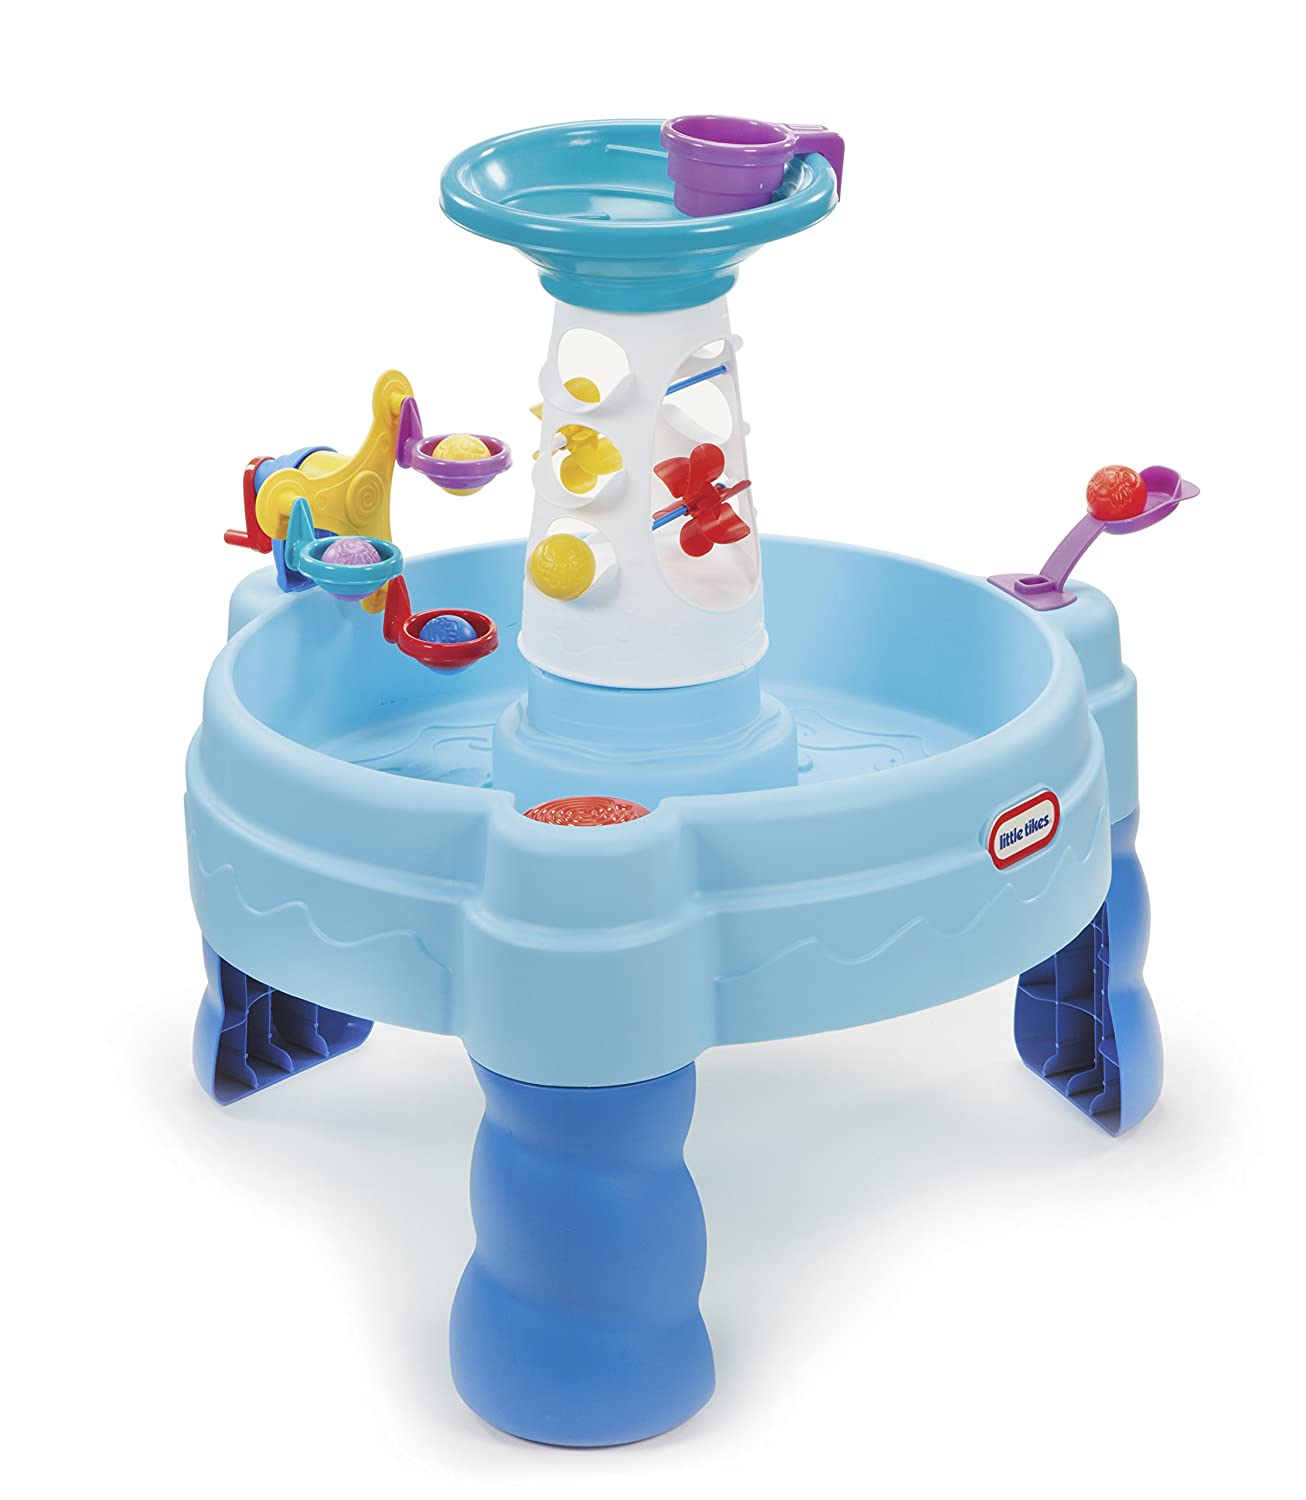 Little Tikes 485114 - Spinning Seas Water Play Table - Wasserspieltisch